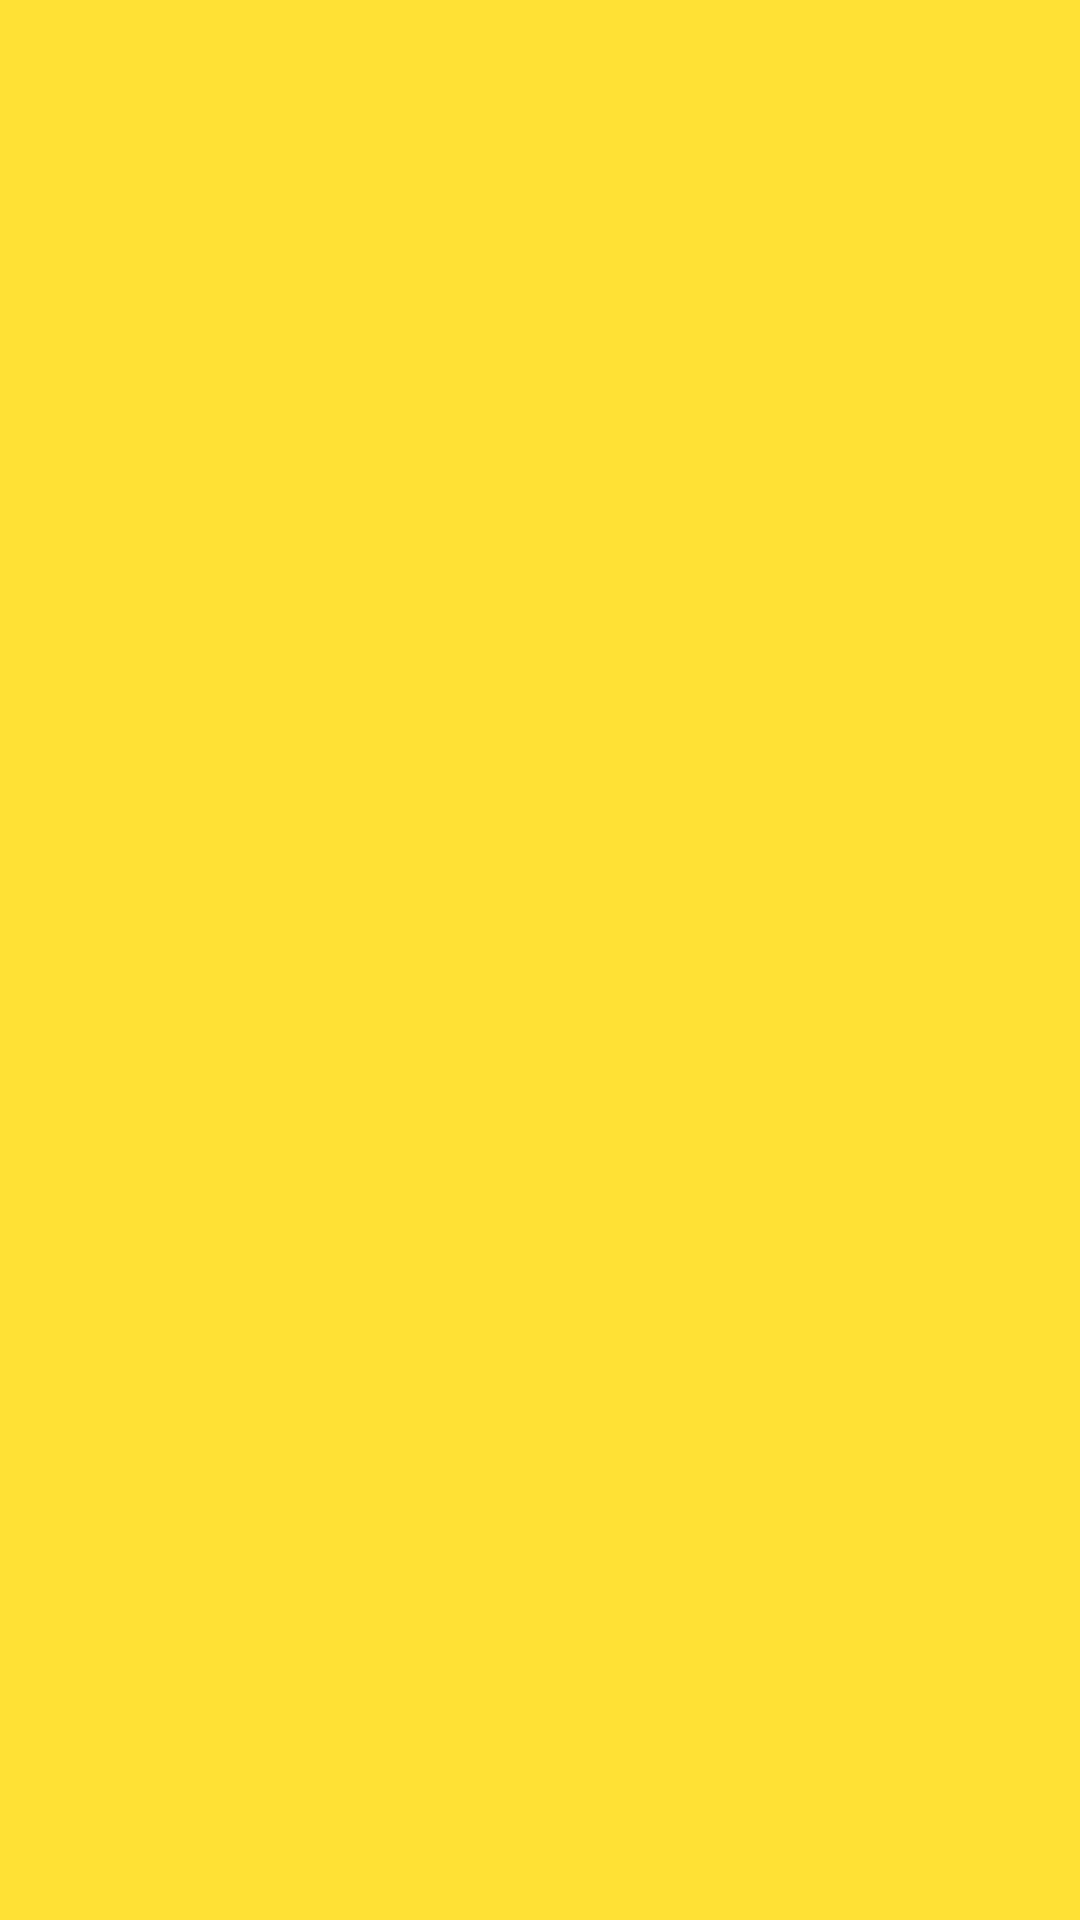 1080x1920 Banana Yellow Solid Color Background